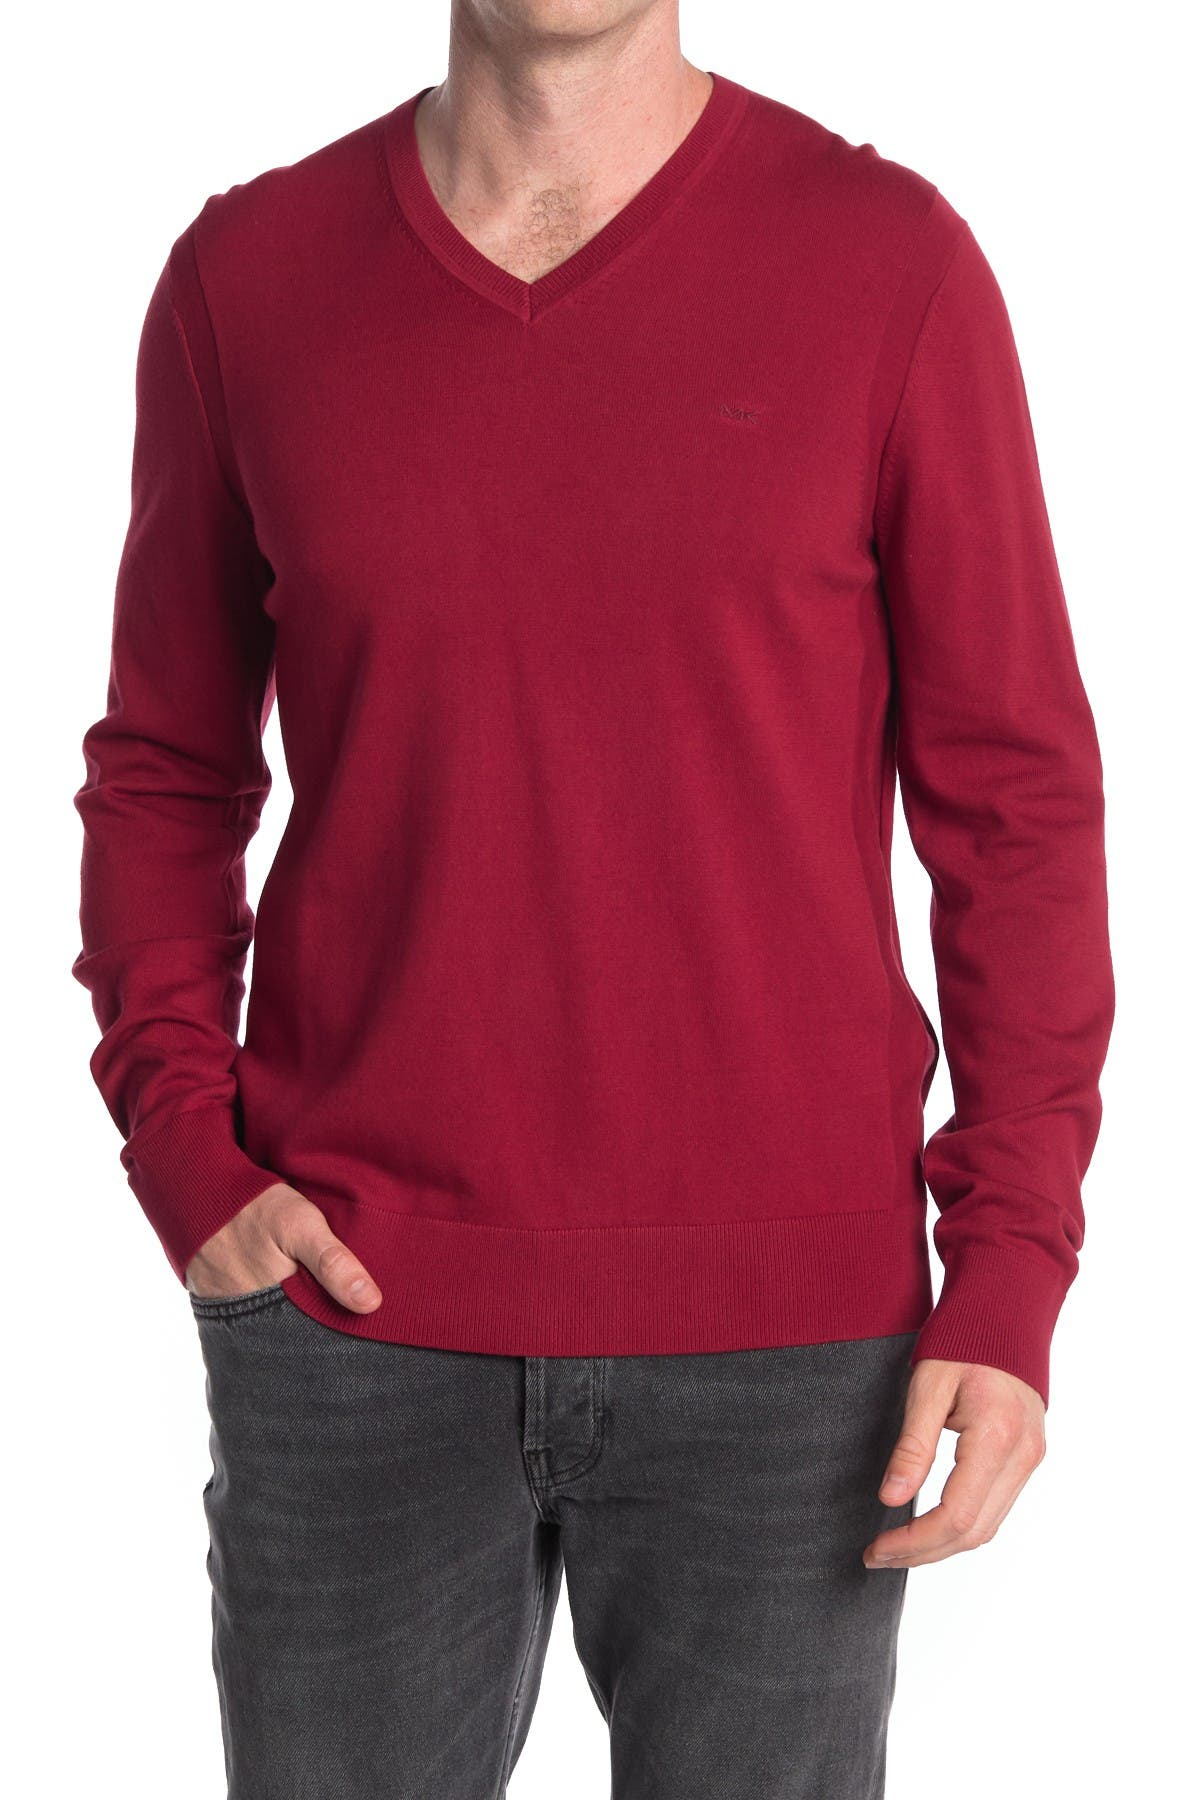 Image of Michael Kors V-Neck Pullover Sweater